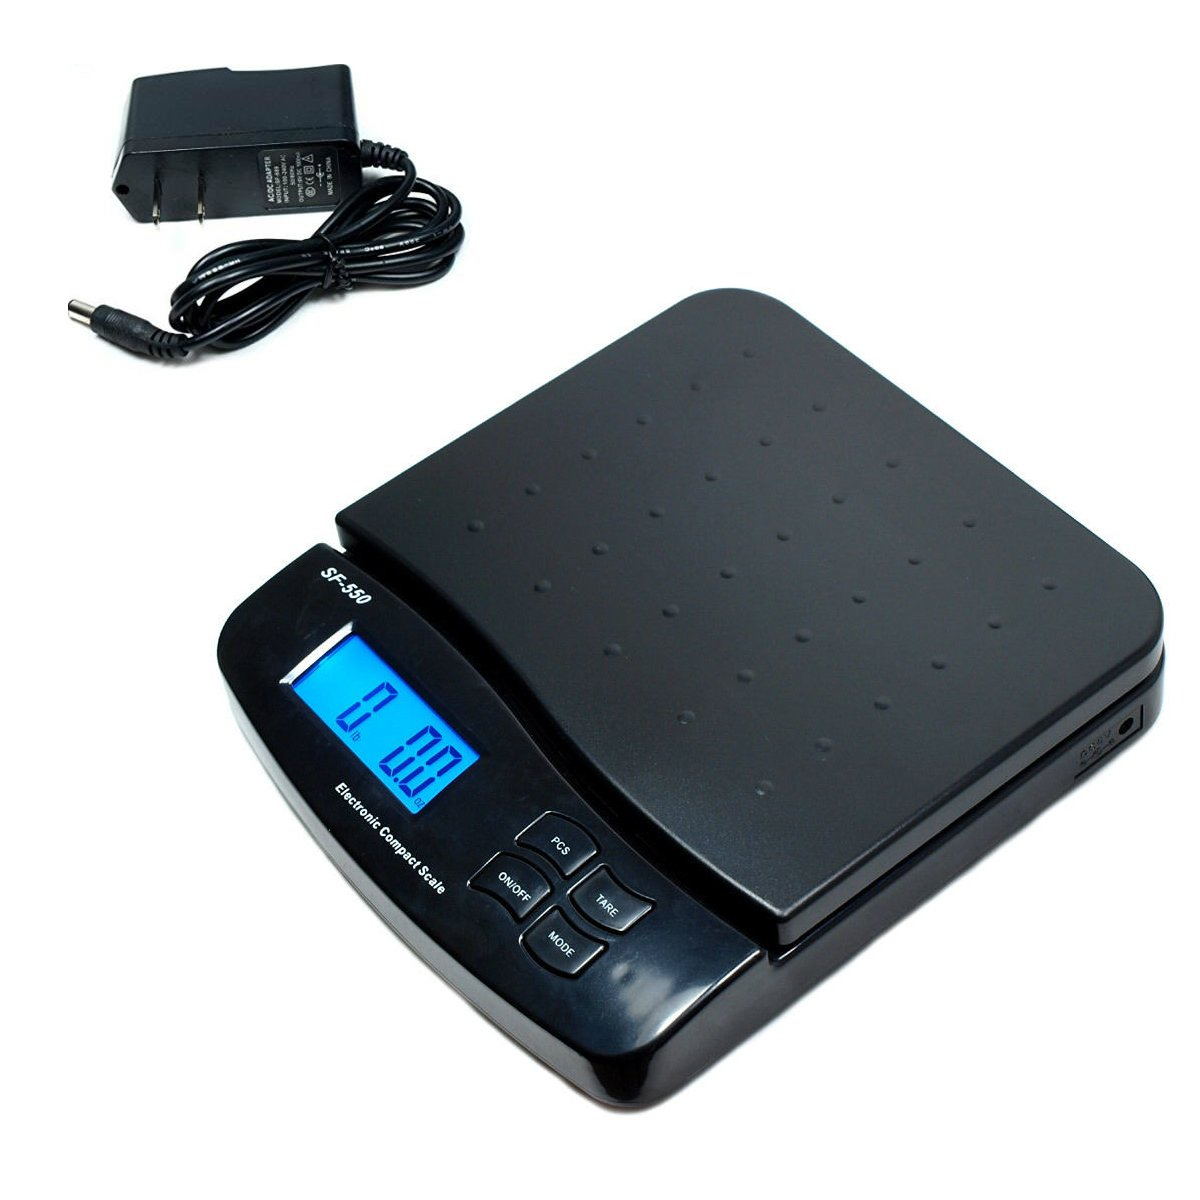 25KG/55LB x 1g/0.1oz Accurate Digital Shipping Scale Weight Weighing Postage Mailing Counting PCS Ktchen House Scale with AC/DC Adapter Bright Screen Good Interface | Black